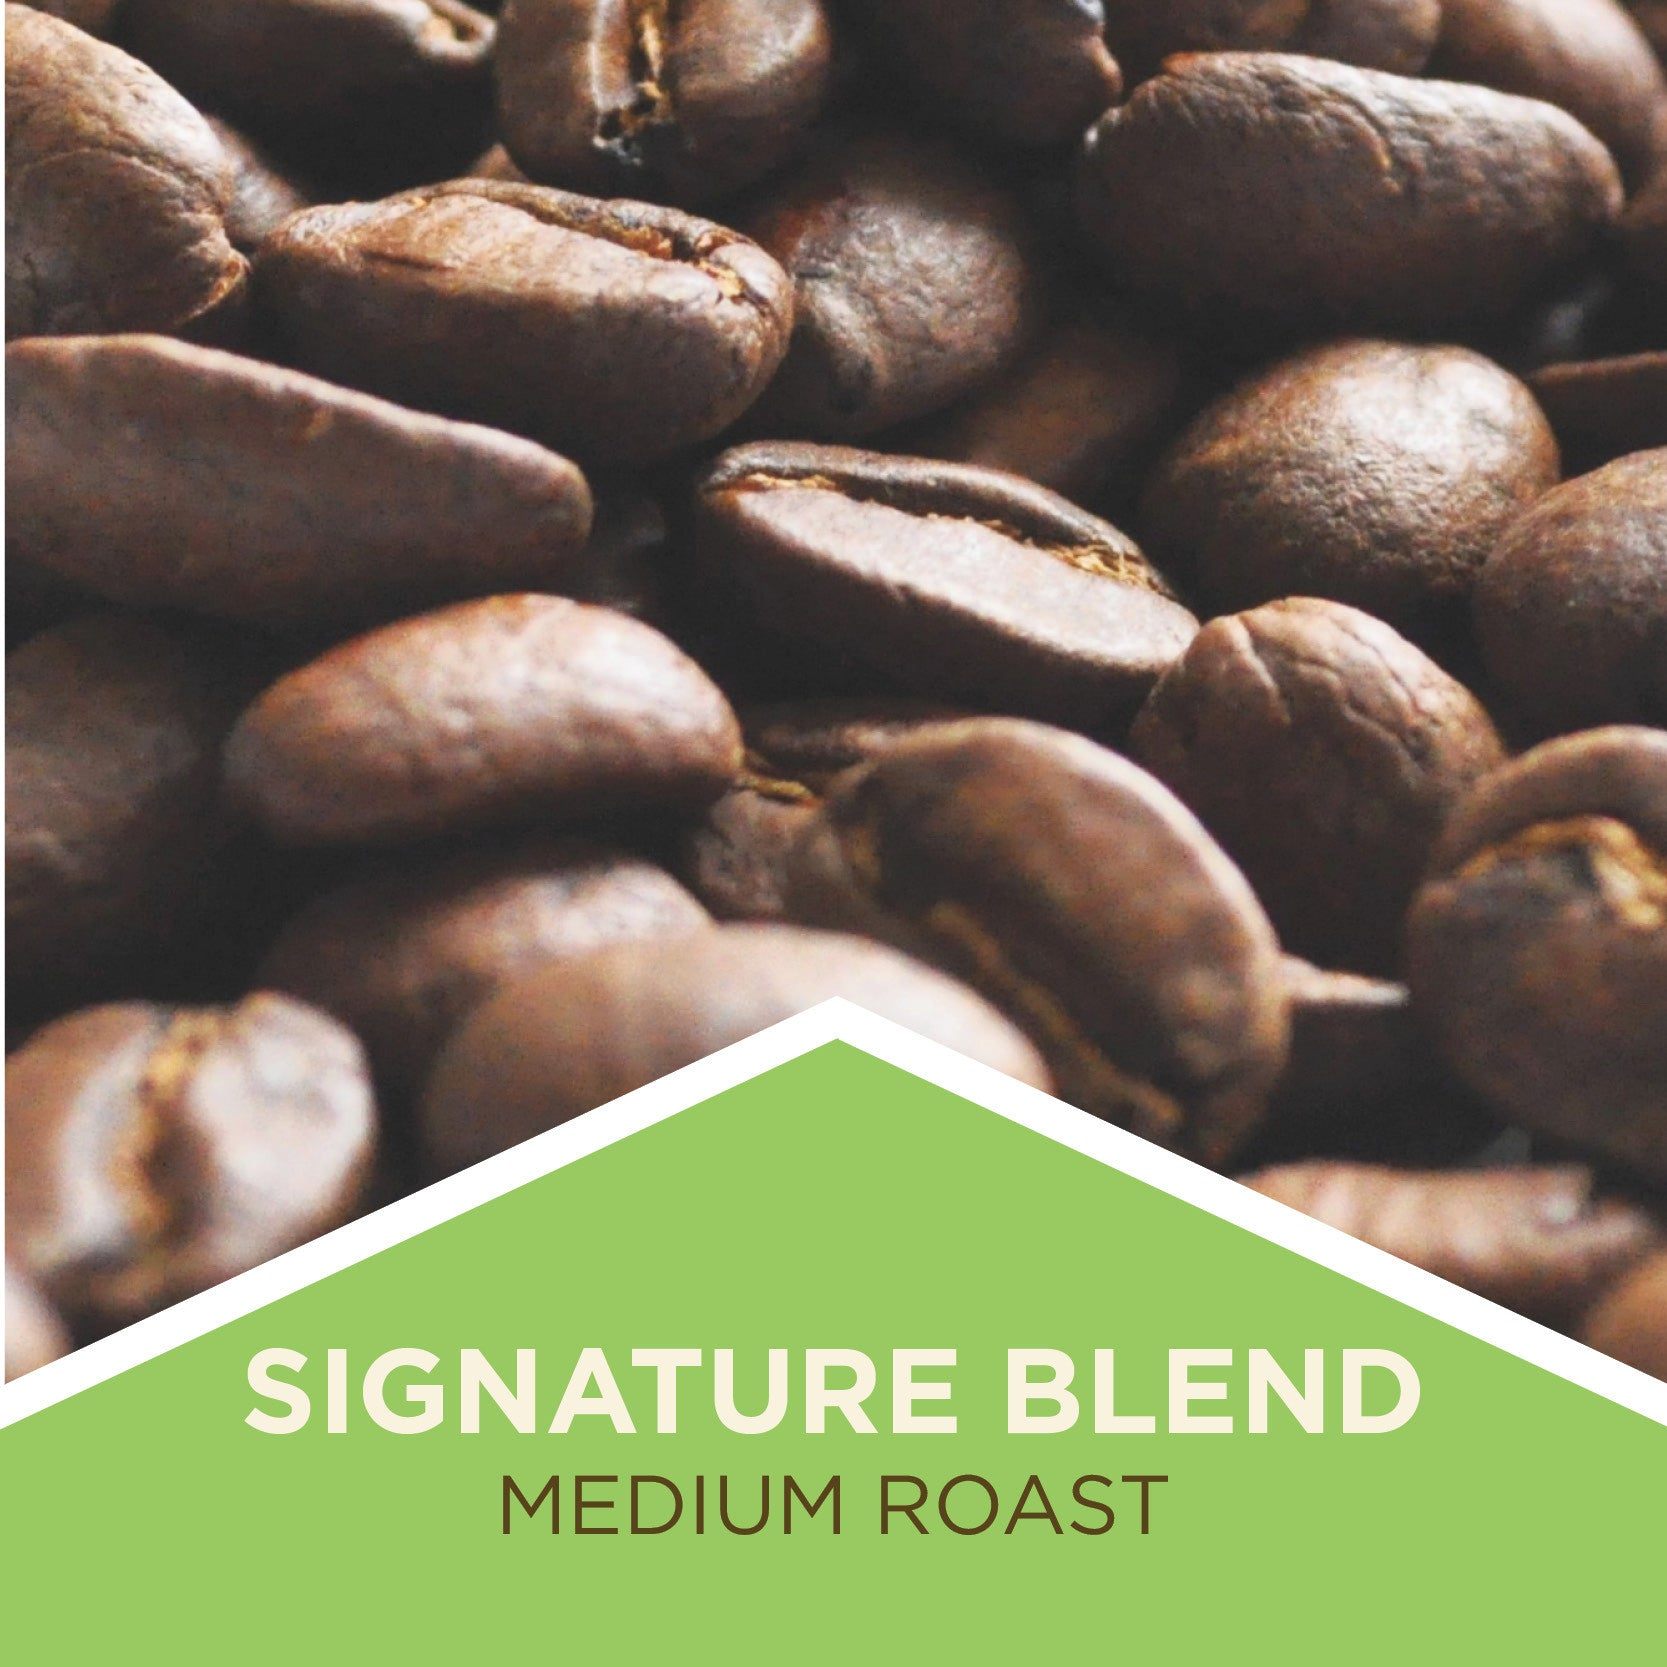 Medium Roast Blend